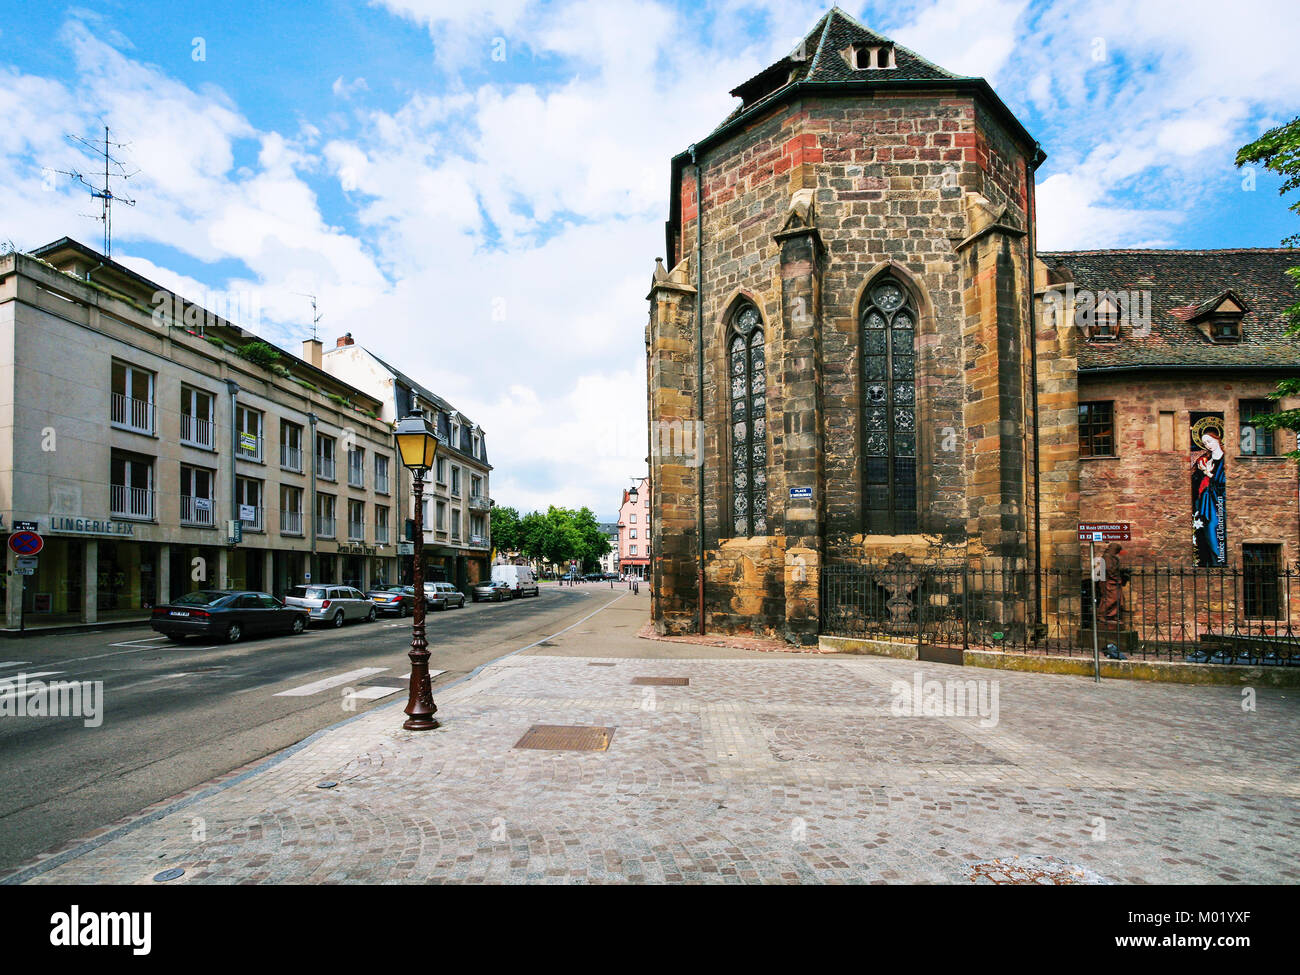 COLMAR, FRANCE - JULY 11, 2010: view of building of Unterlinden Museum from street Rue Kleber. The museum is housed - Stock Image